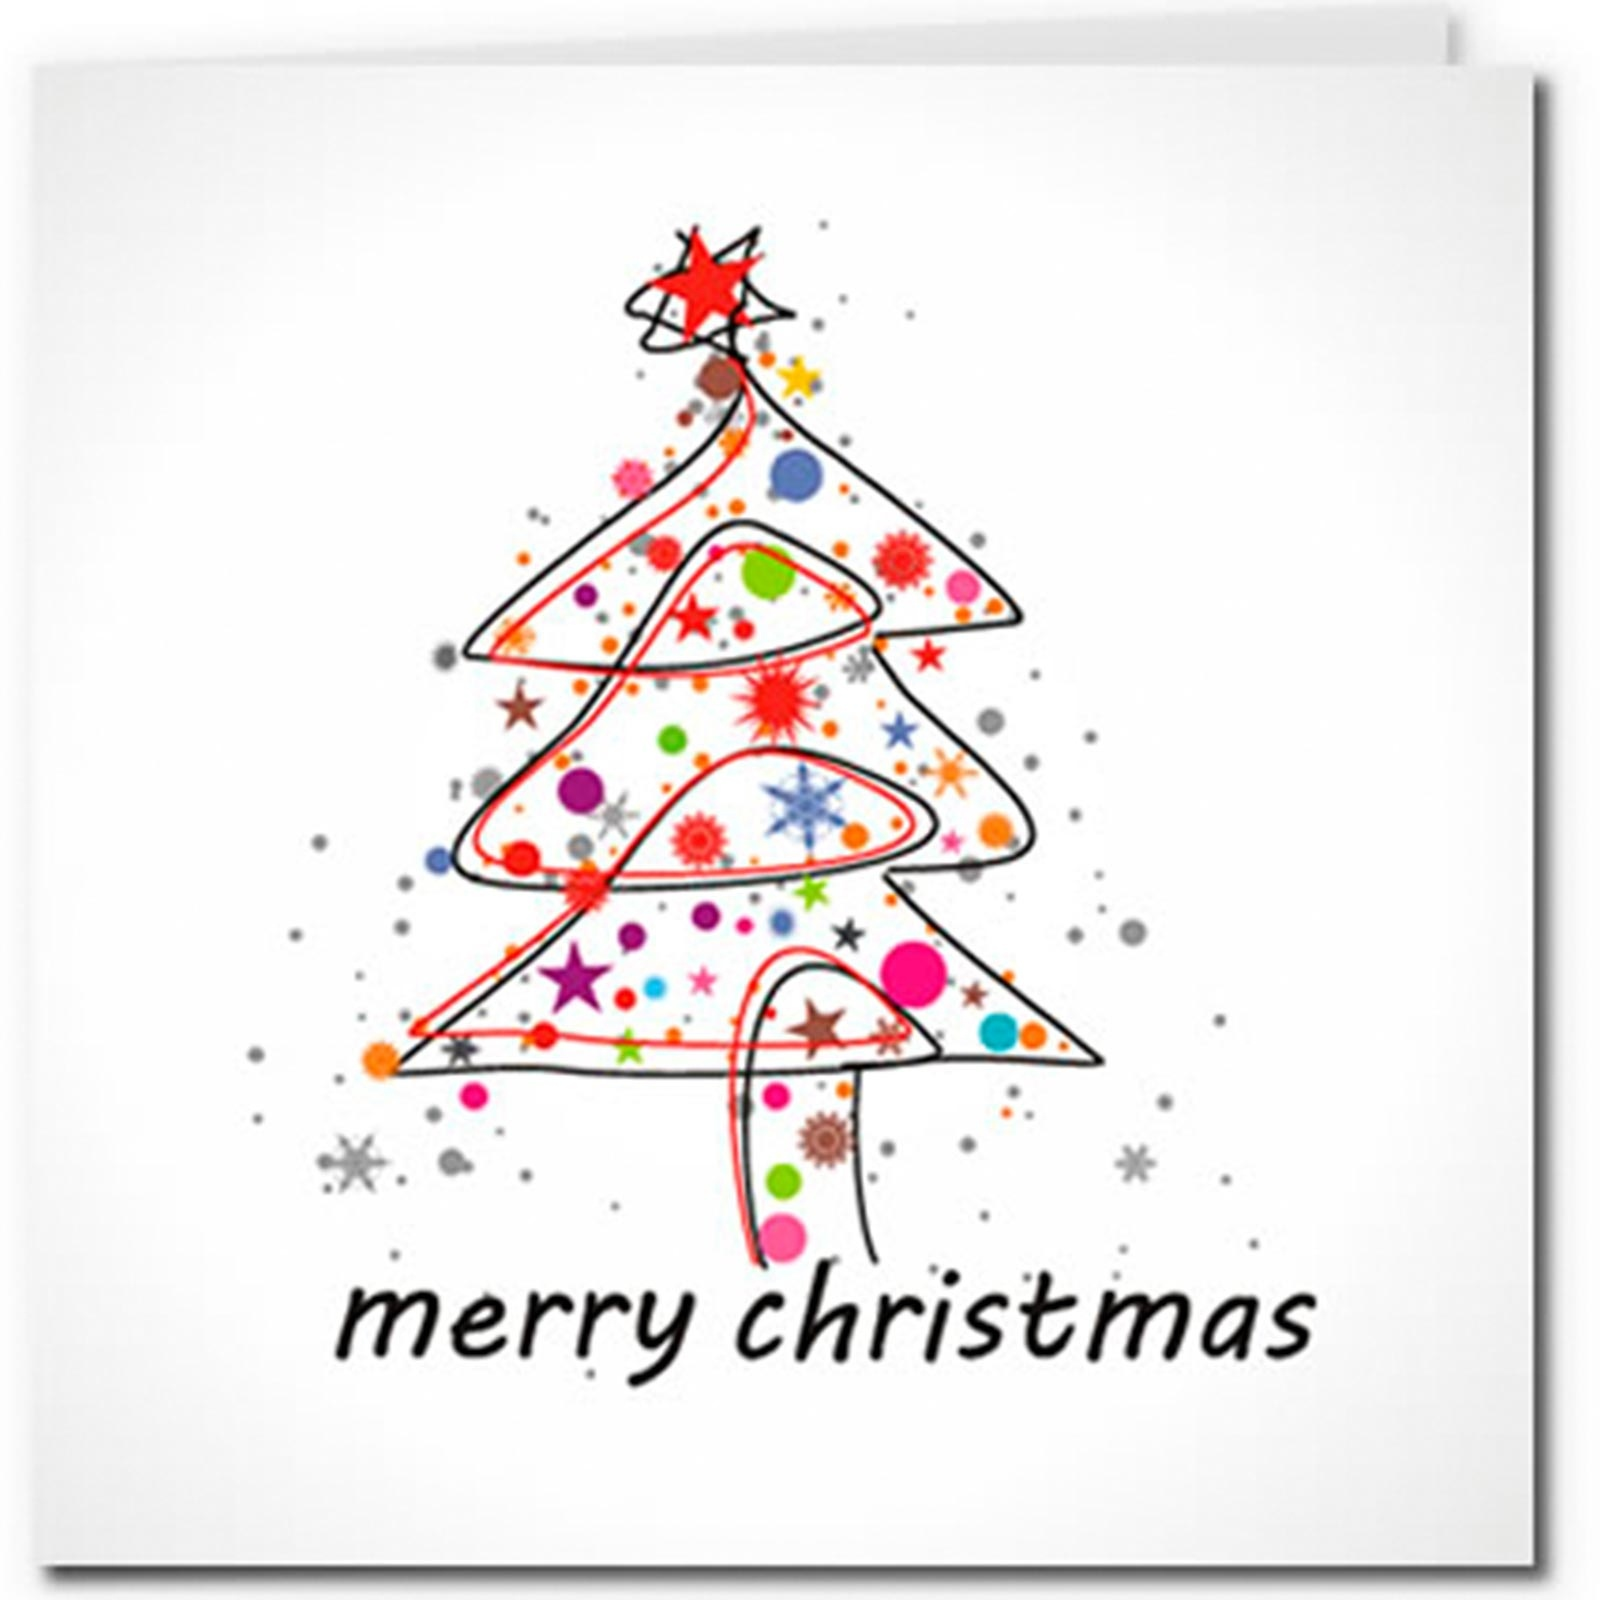 Free Christmas Cards To Print Out And Send This Year | Reader's Digest - Free Printable Xmas Cards